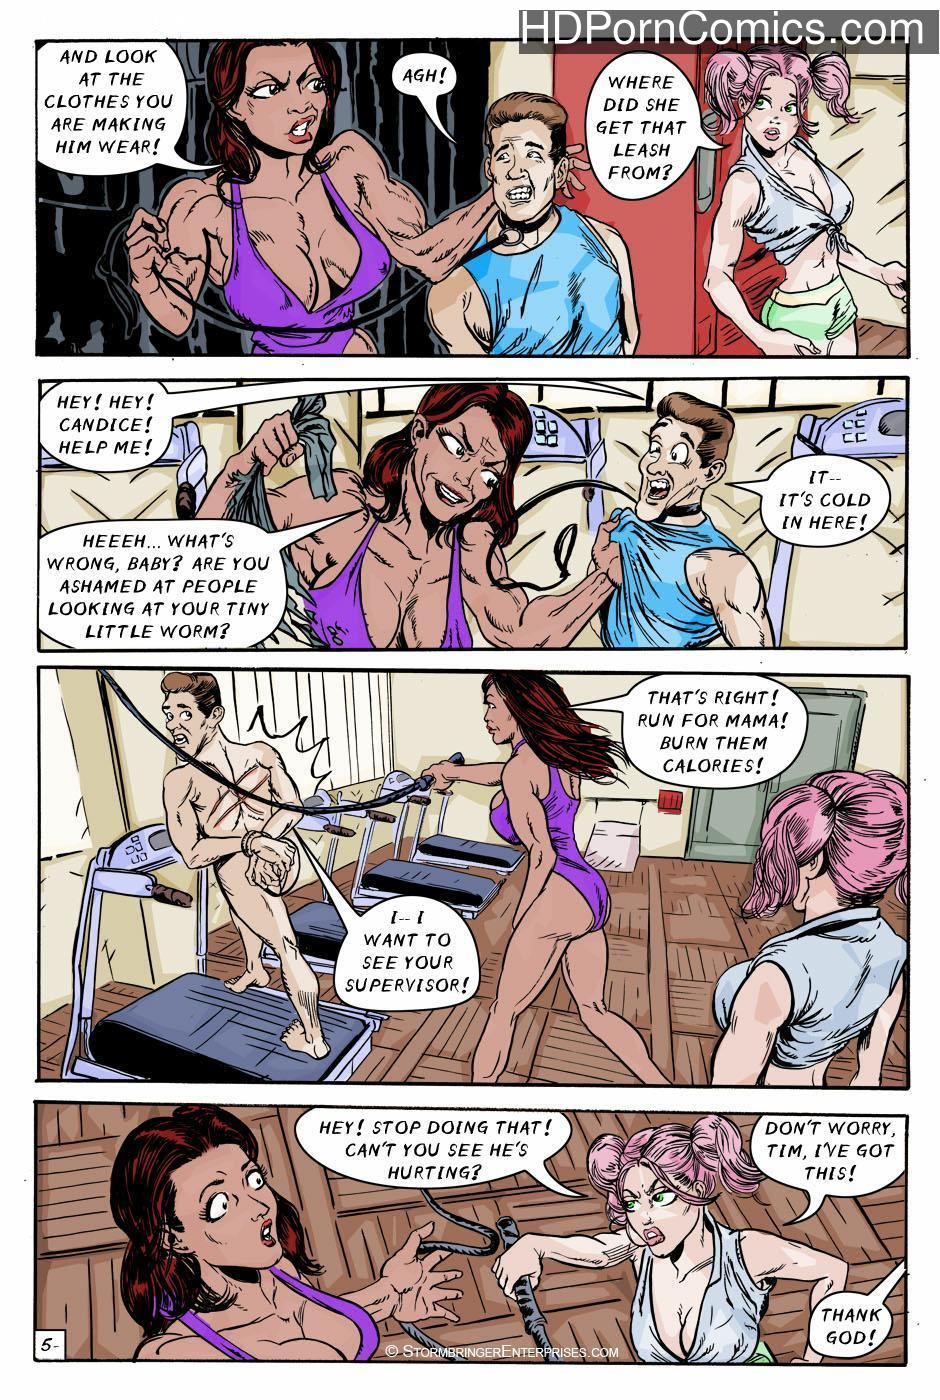 Erotic Adventures of Candice 01-18121 free sex comic